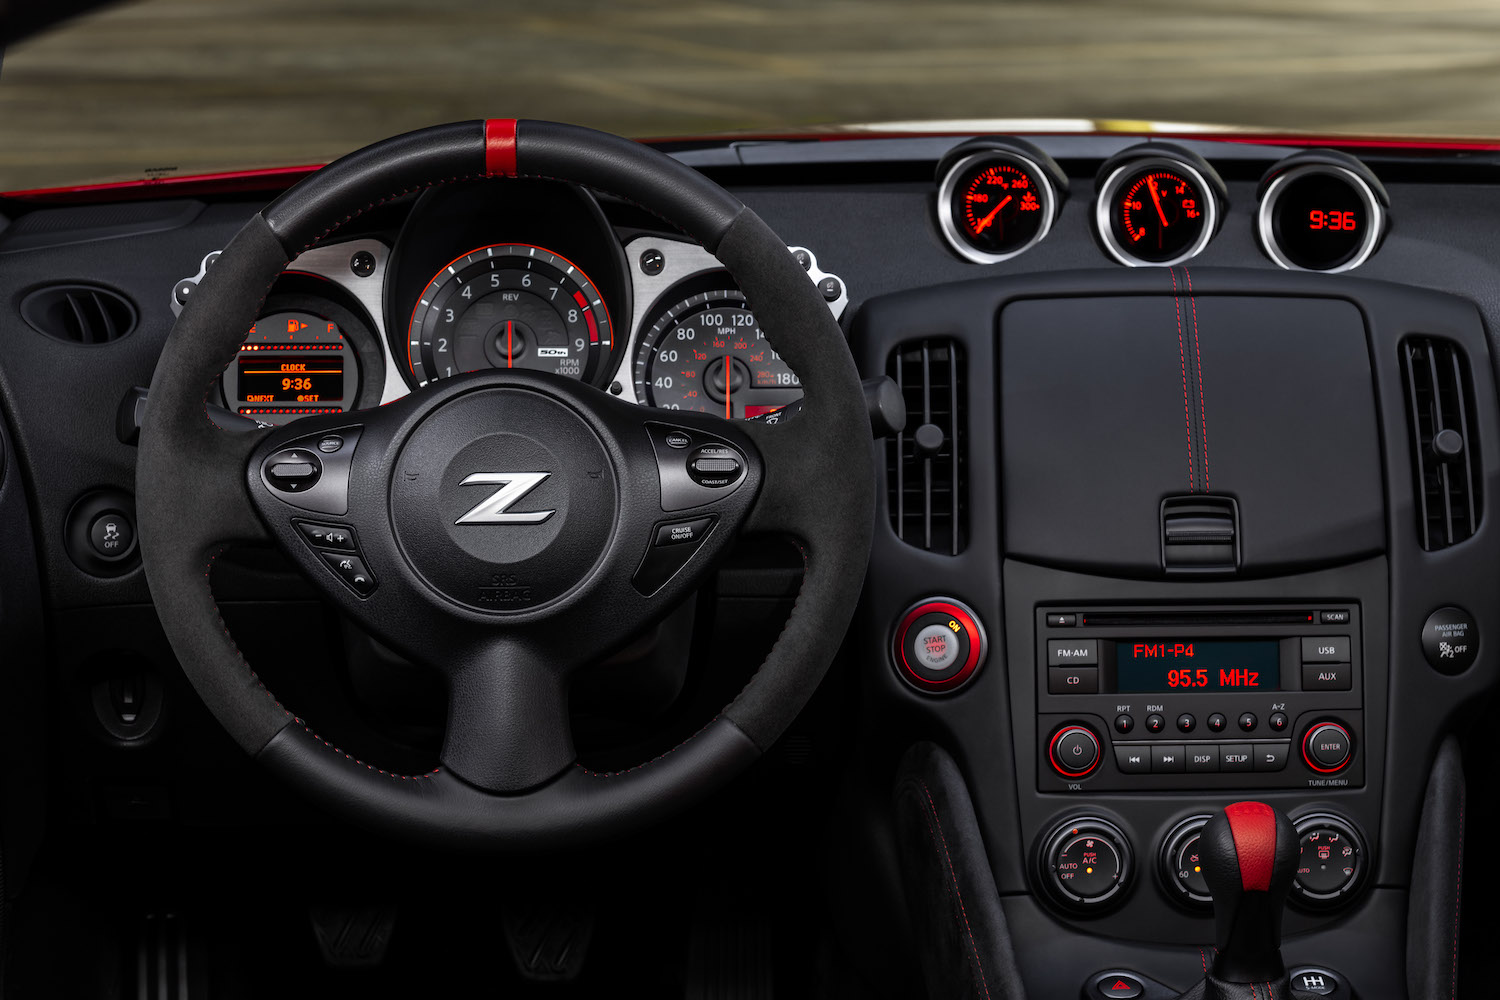 nissan z logo on steering wheel of car interior front